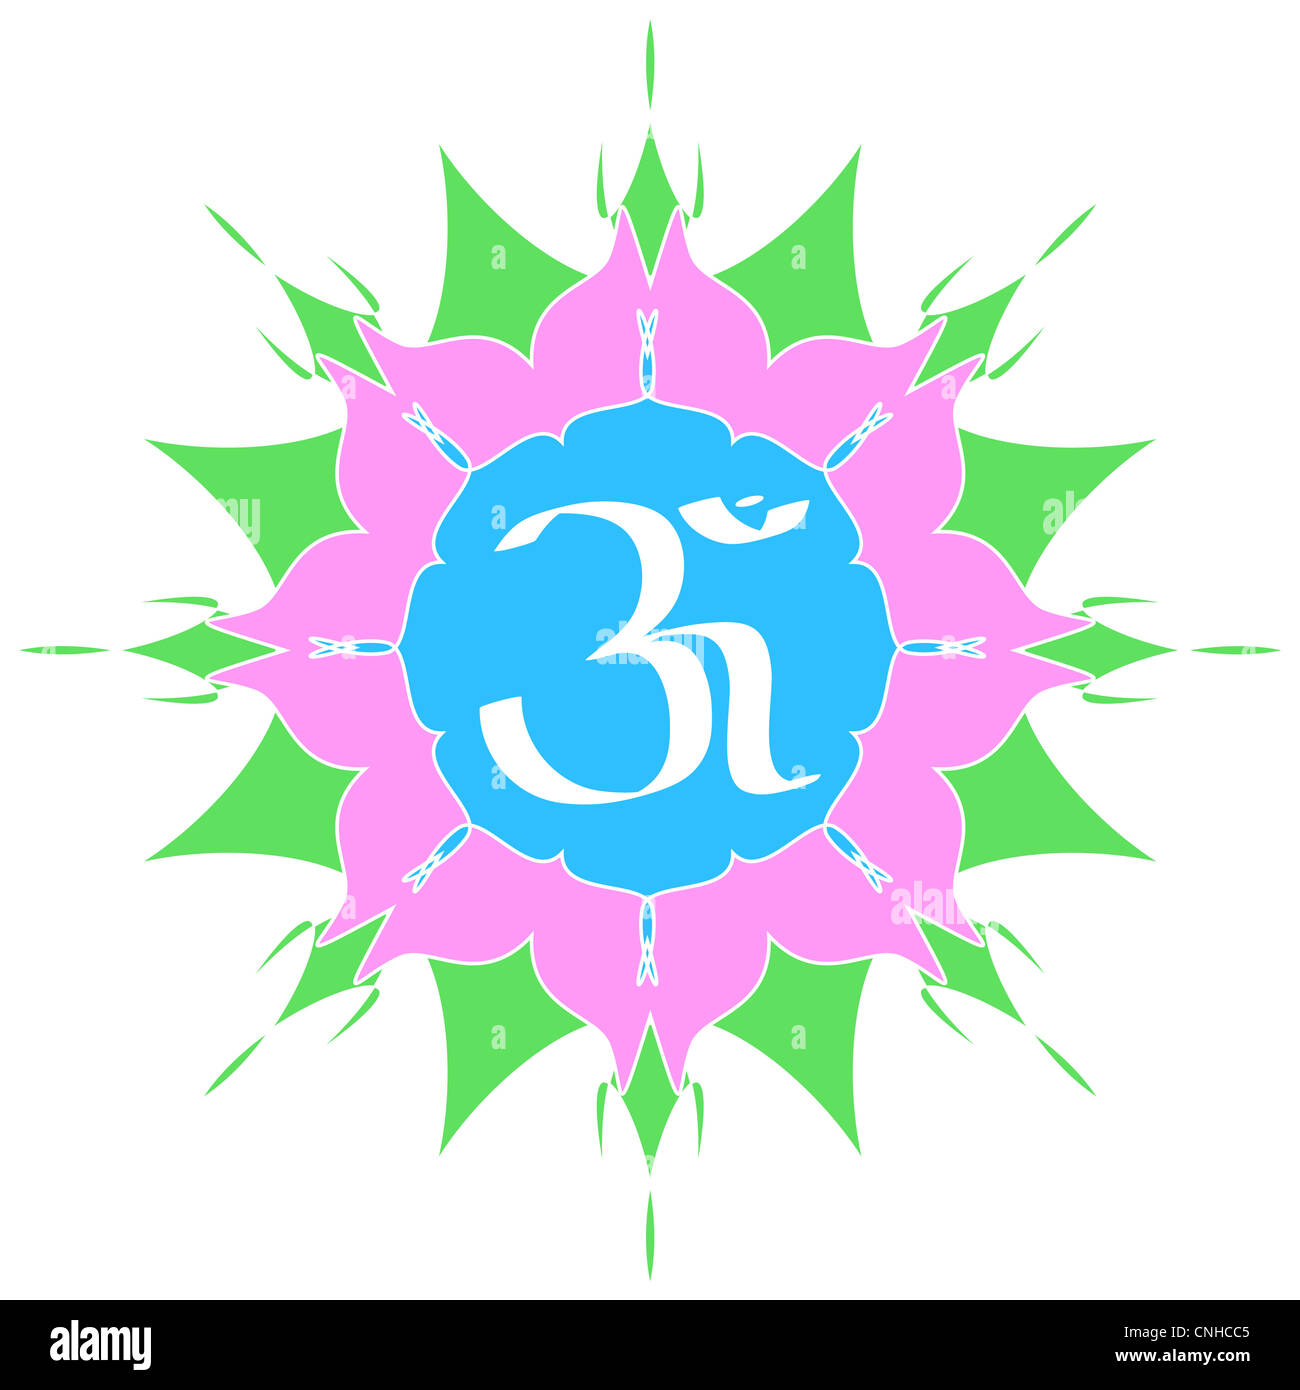 The divine om symbol on lotus flower stock photo 47711445 alamy the divine om symbol on lotus flower mightylinksfo